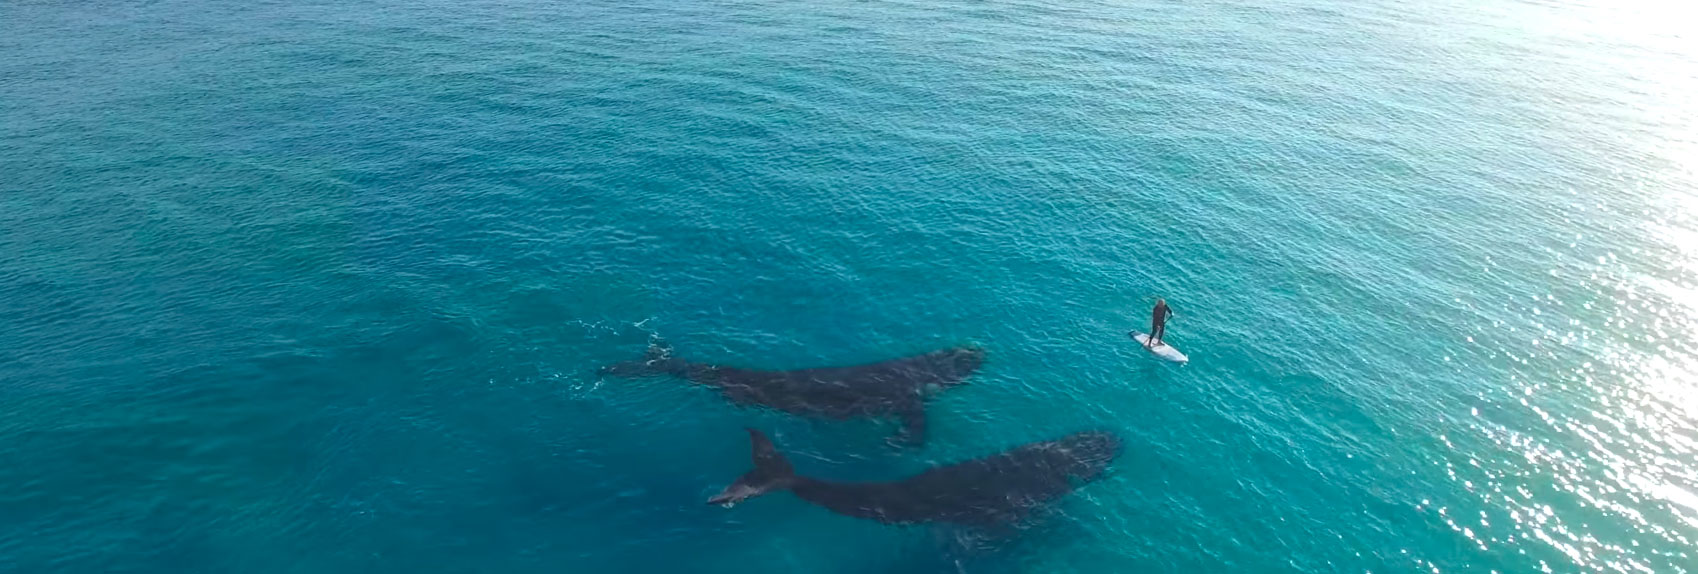 Paddleboarder's Magical Encounter With 2 Whales in Australia